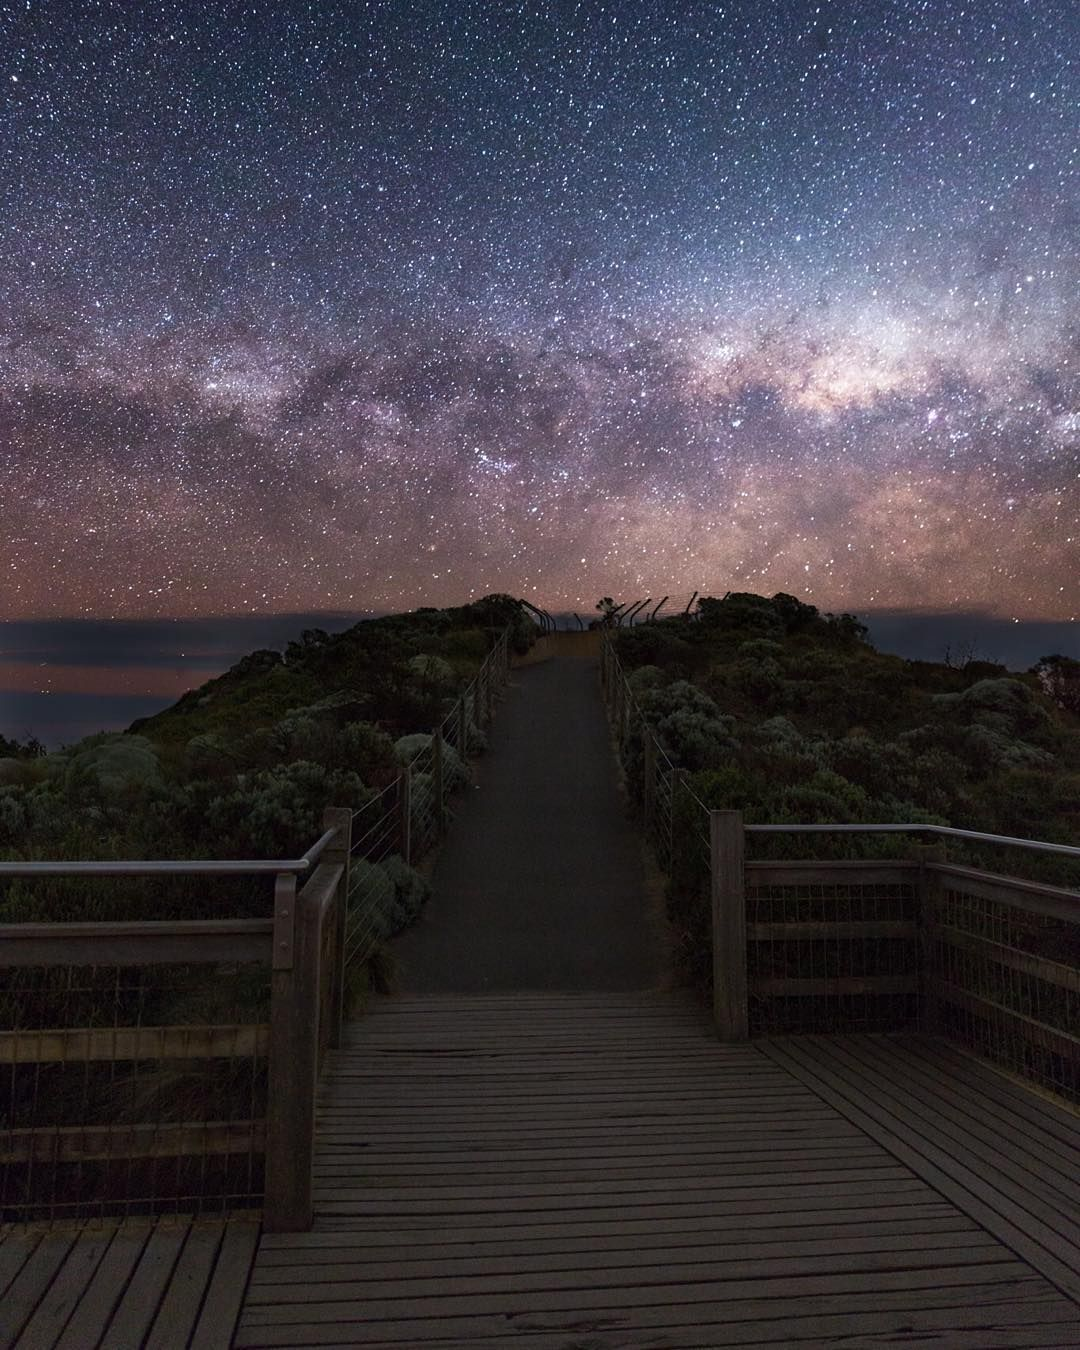 A walk among the stars at the twelve apostles Great ocean road. #epic_captures #pro_ig #dream_image #special_shots #awesomeearth #worldplaces #ourplanetdaily #au_nz_hotshotz #melbourne # #seeaustralia #australia #victoria #openmyworld #canon #canonaustralia #travel #natureaddict #landscape #5d #australiagram #exploringaustralia #visitvictoria #ausfeels #globe_travel #visitgor #landscape #exploringaustralia #astro #astrophotography #milkyway #greatoceanroad #12apostles by tyler_schluter…